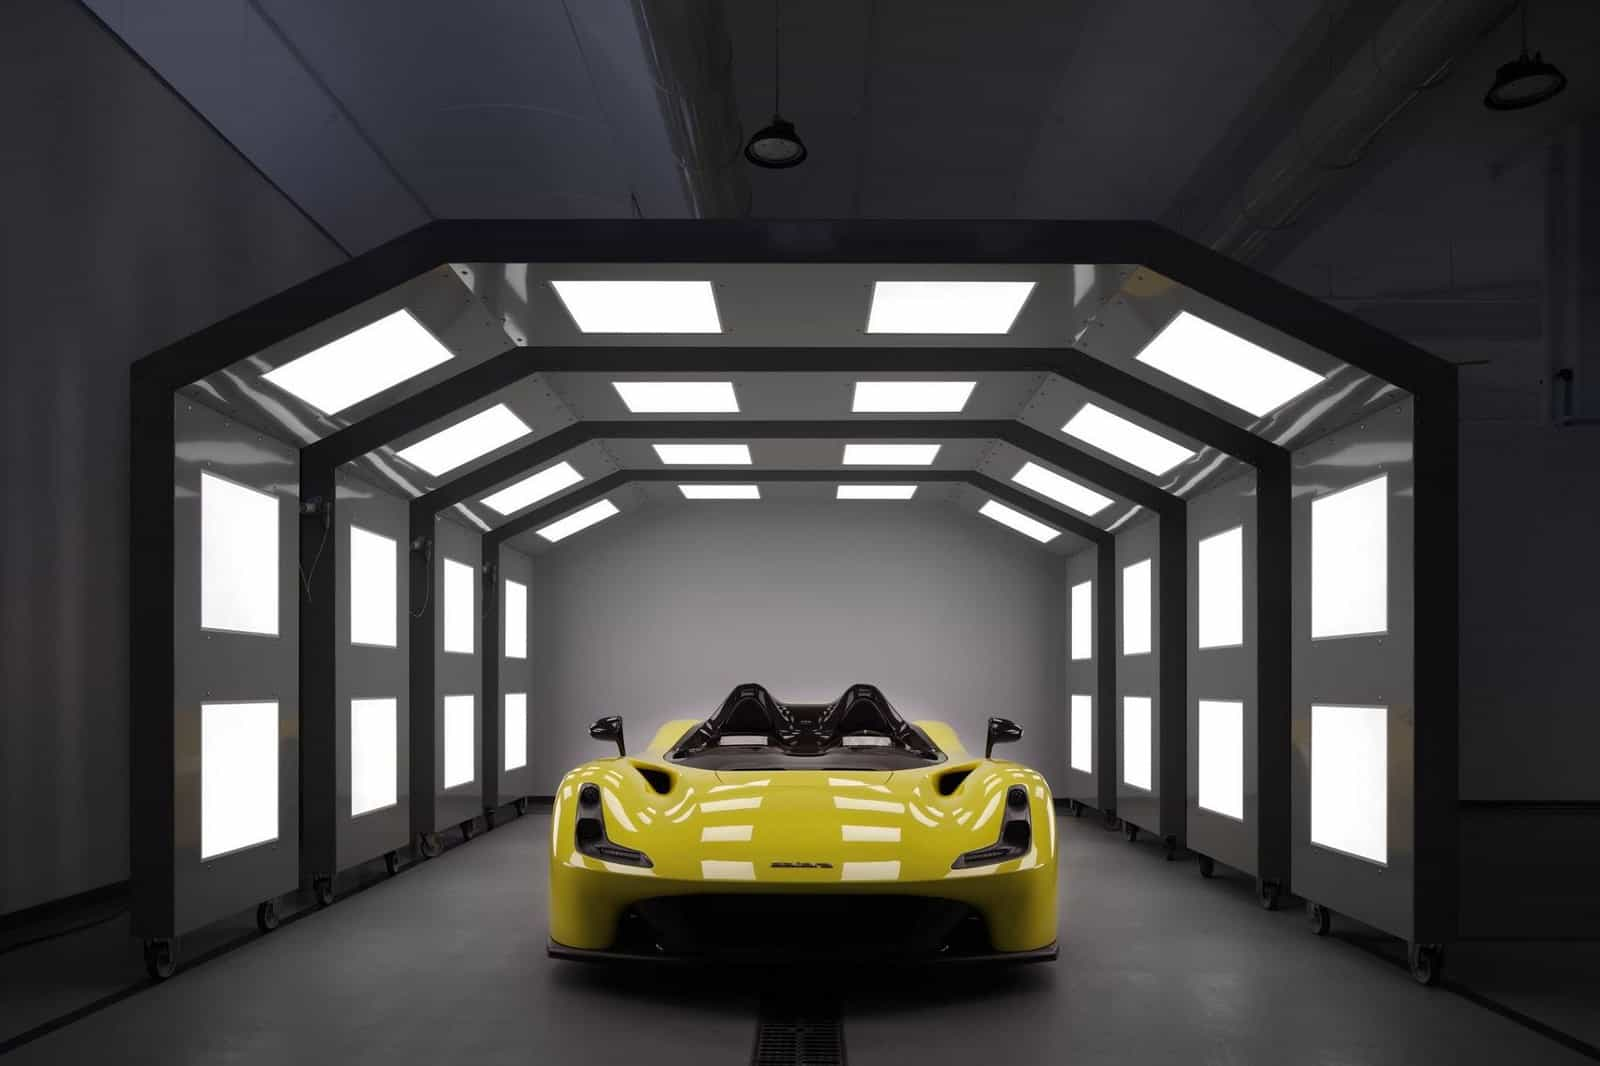 The Garage cover image